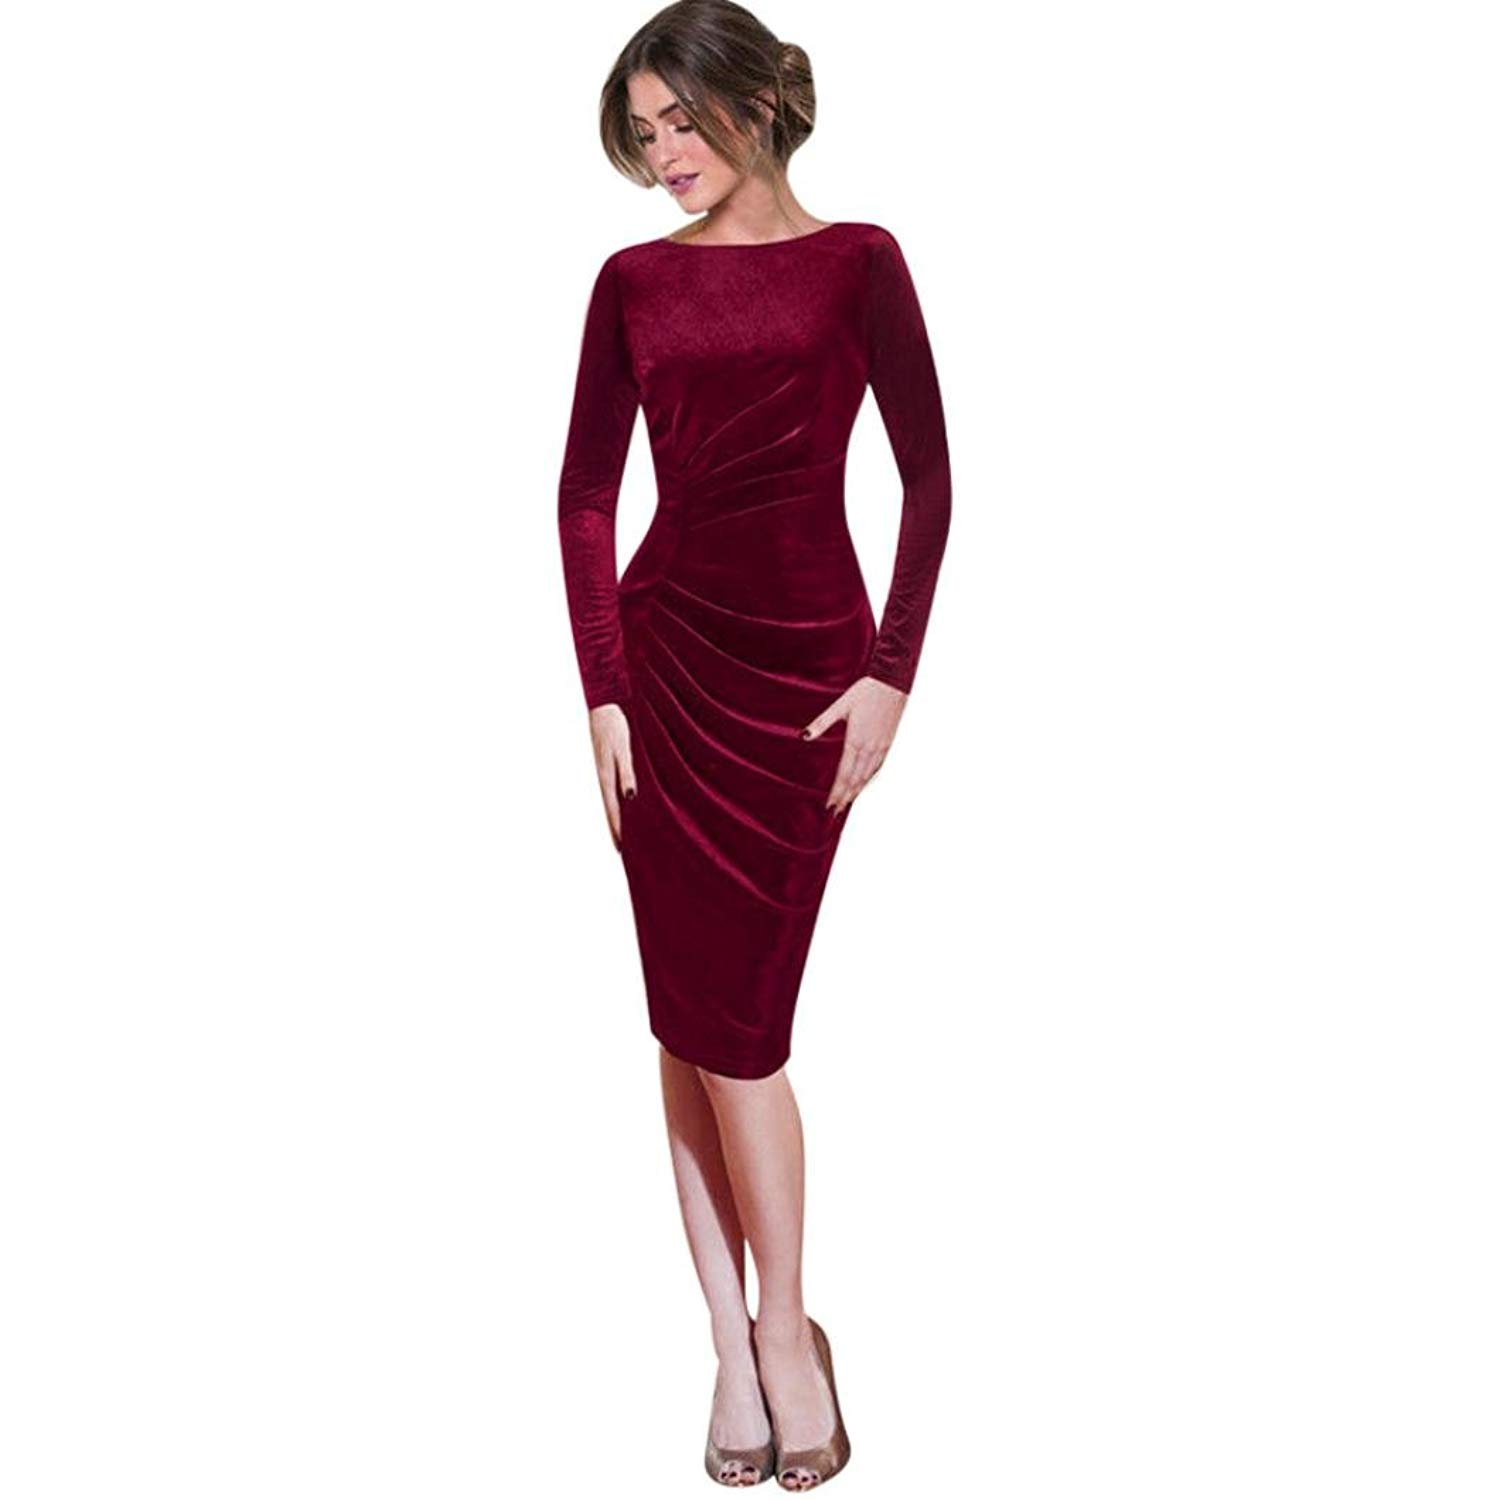 9ea857934a73 Get Quotations · Minisoya Elegant Women Long Sleeve Velvet Dress Ruched  Draped Slim Work Office Cocktail Party Sheath Pencil